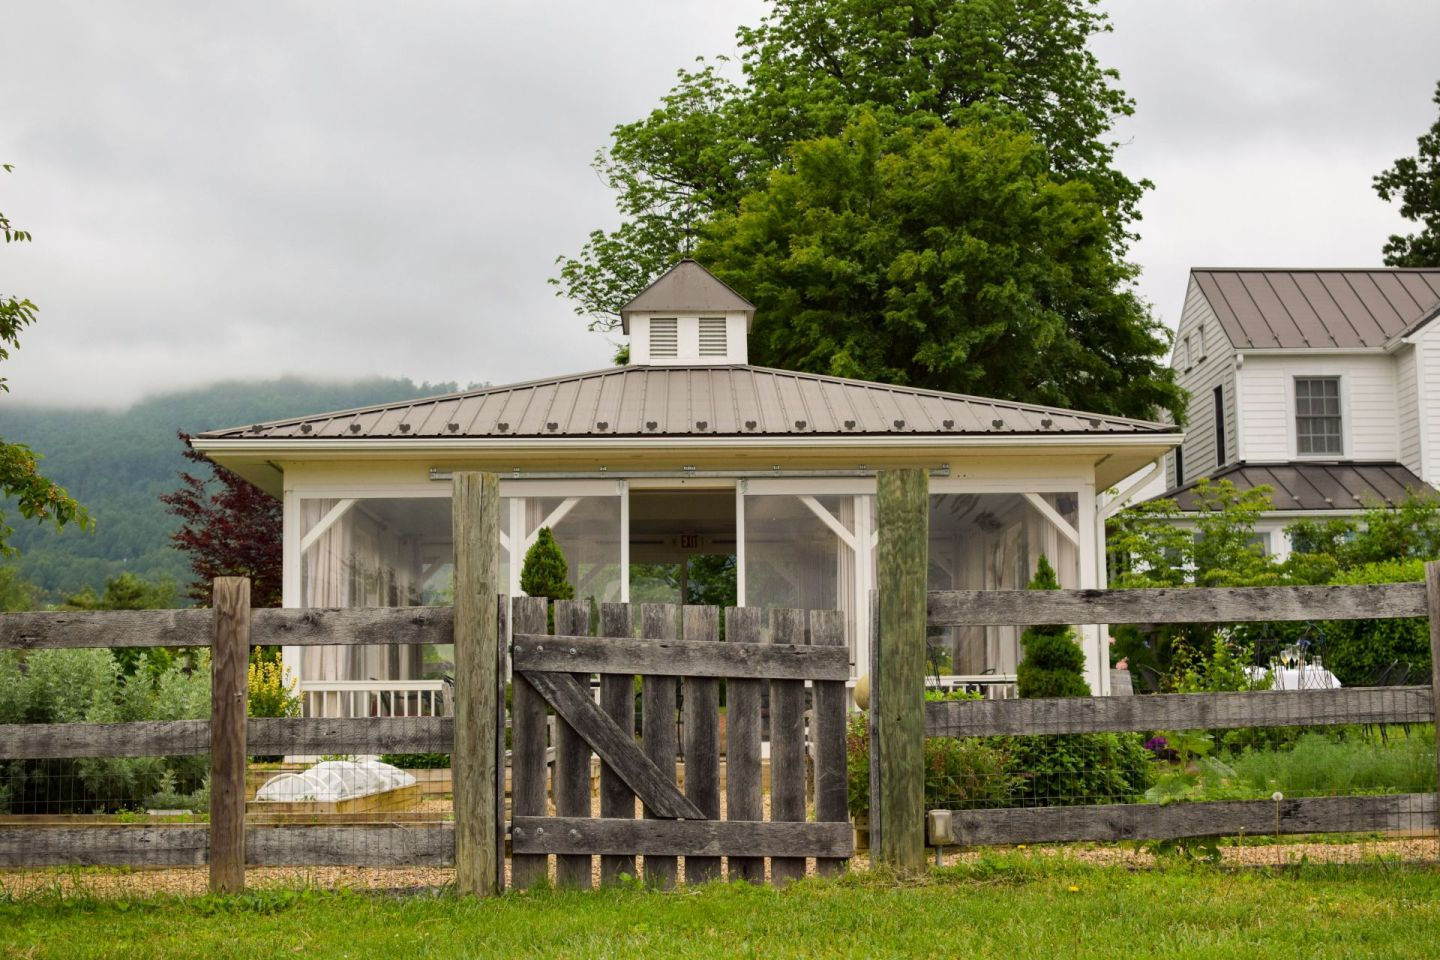 farmhouse at veritas - bed and breakfasts near dc - social distancing bed and breakfast